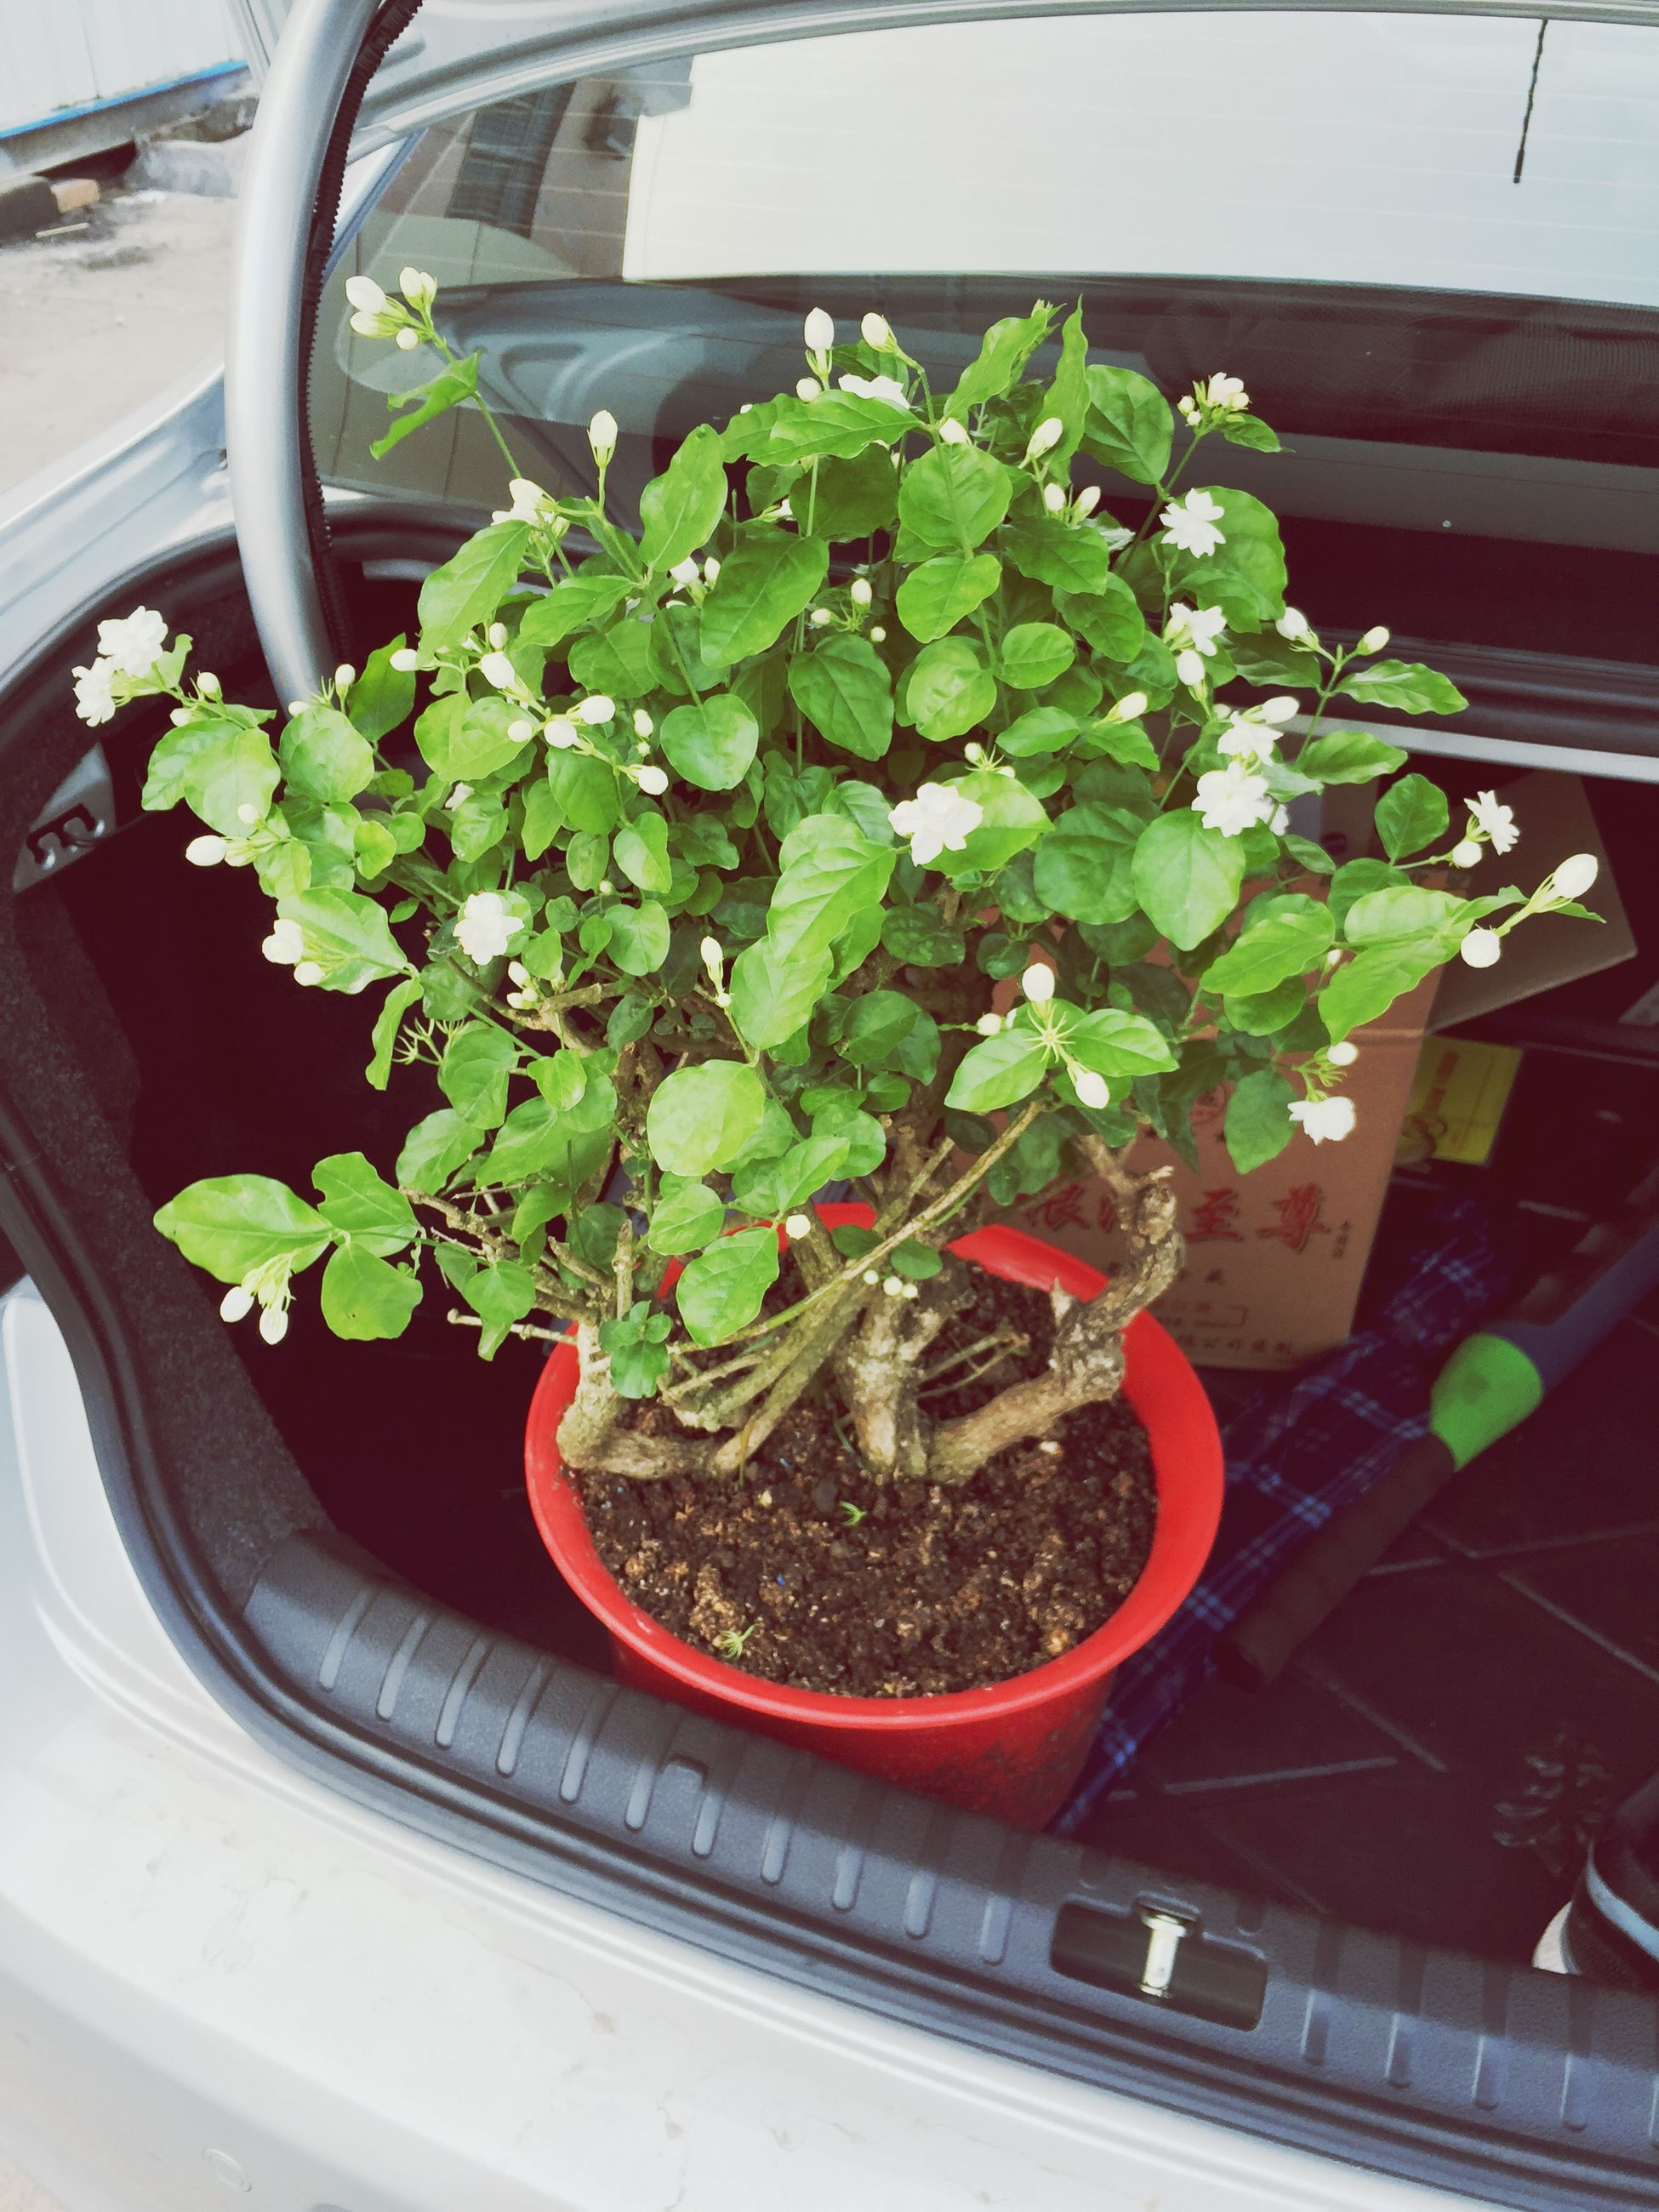 plant, flower, growth, potted plant, freshness, high angle view, leaf, nature, transportation, green color, fragility, land vehicle, mode of transport, beauty in nature, no people, day, close-up, front or back yard, car, outdoors